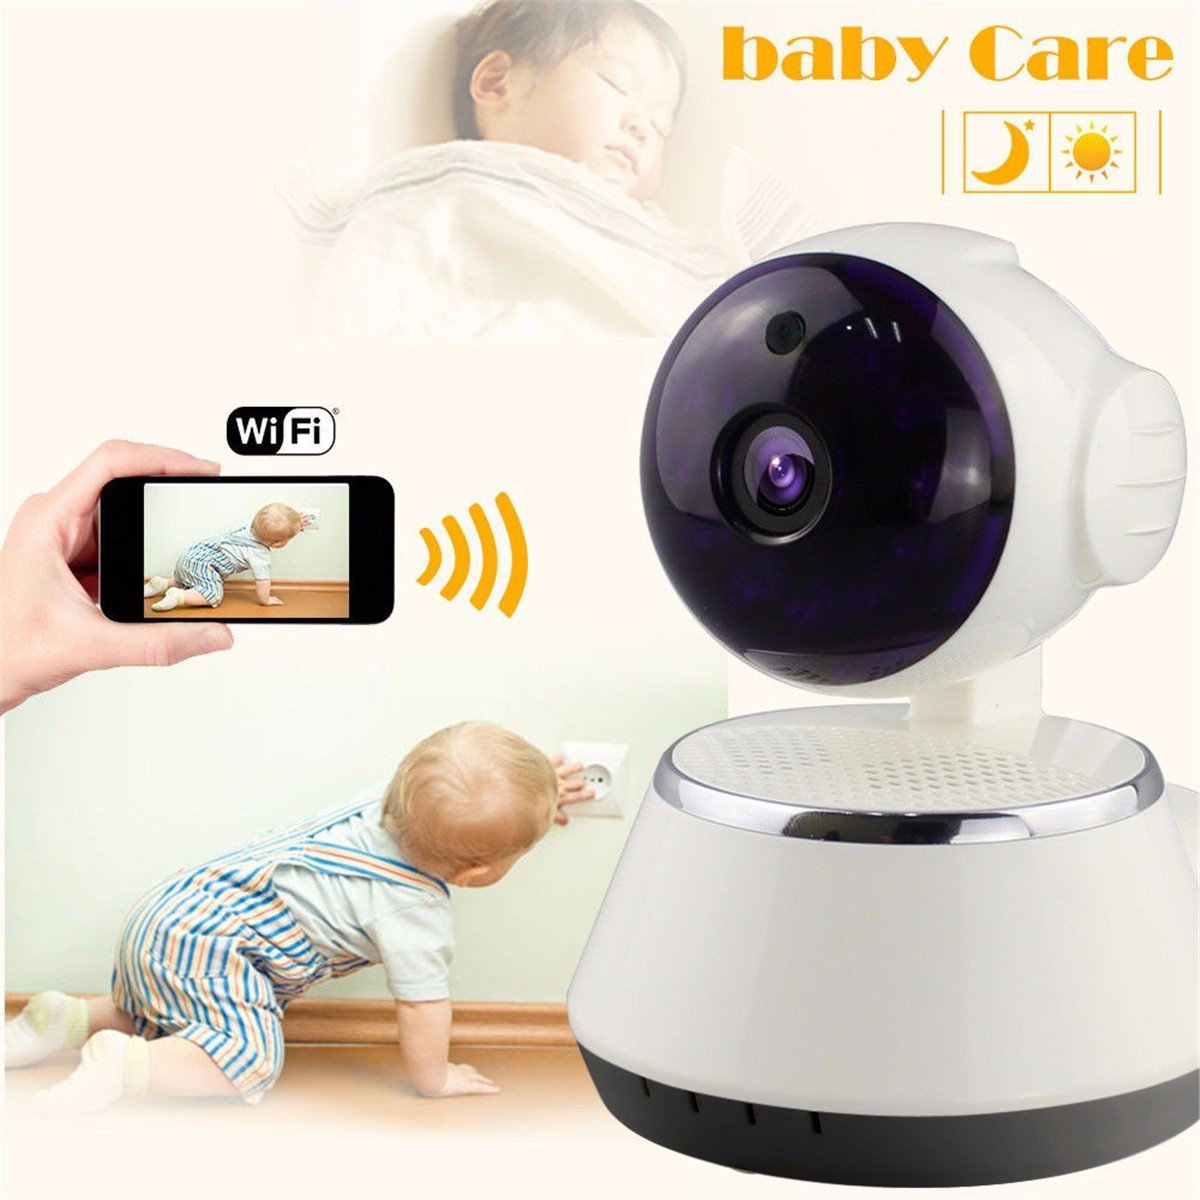 Shopping guide for best baby monitors. Last Updated October A baby monitor is an ever-present, all-seeing guardian that offers peace of mind while your baby naps. A good monitor blends into the background while your child sleeps but has the technology to alert you in seconds.